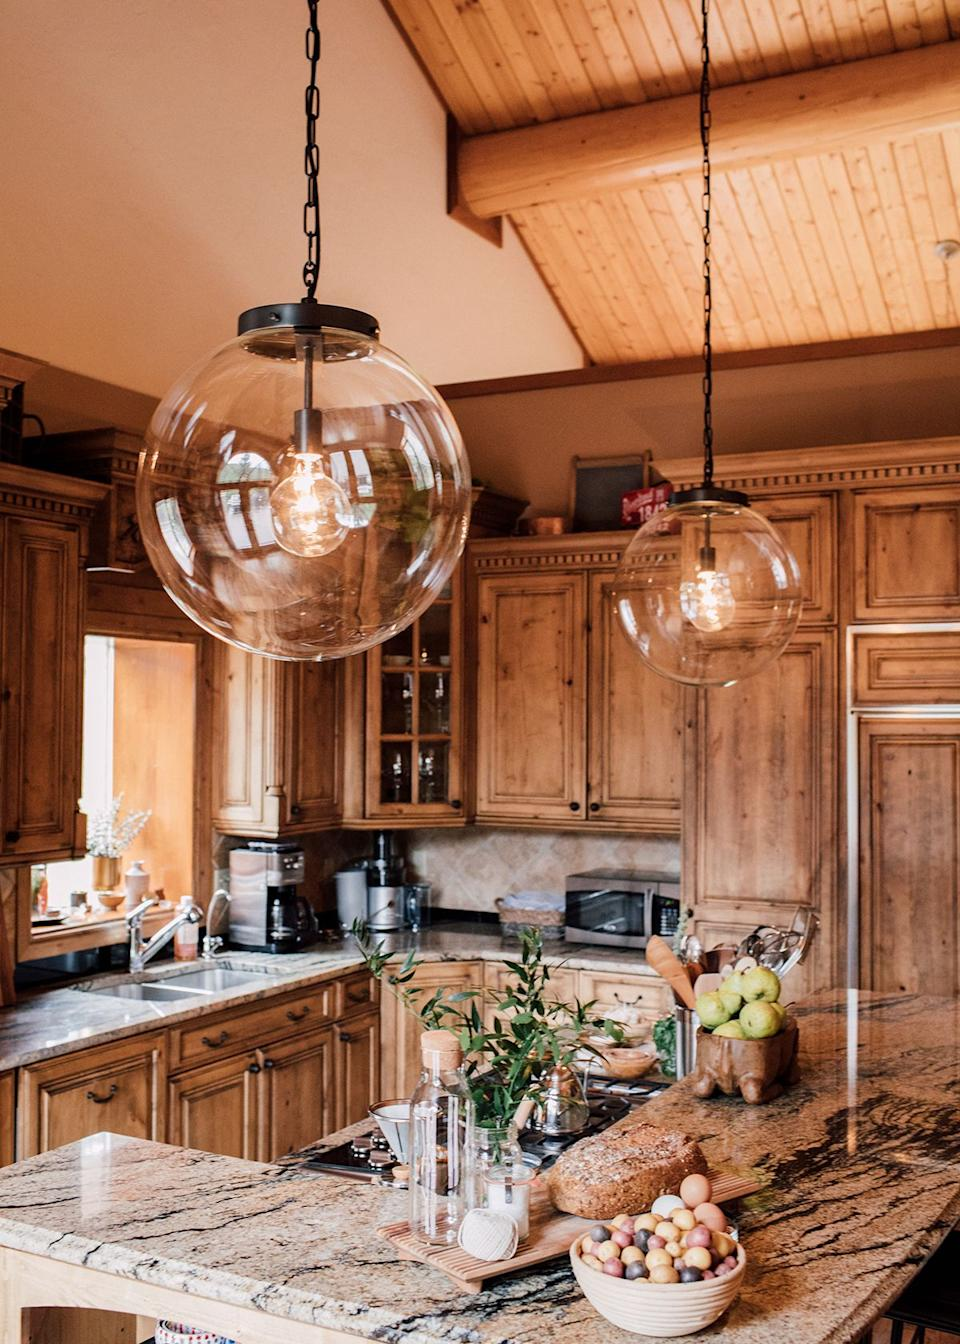 In the kitchen, modern pendant light fixtures meet finely crafted cabinetry and earth-tone marble countertops.